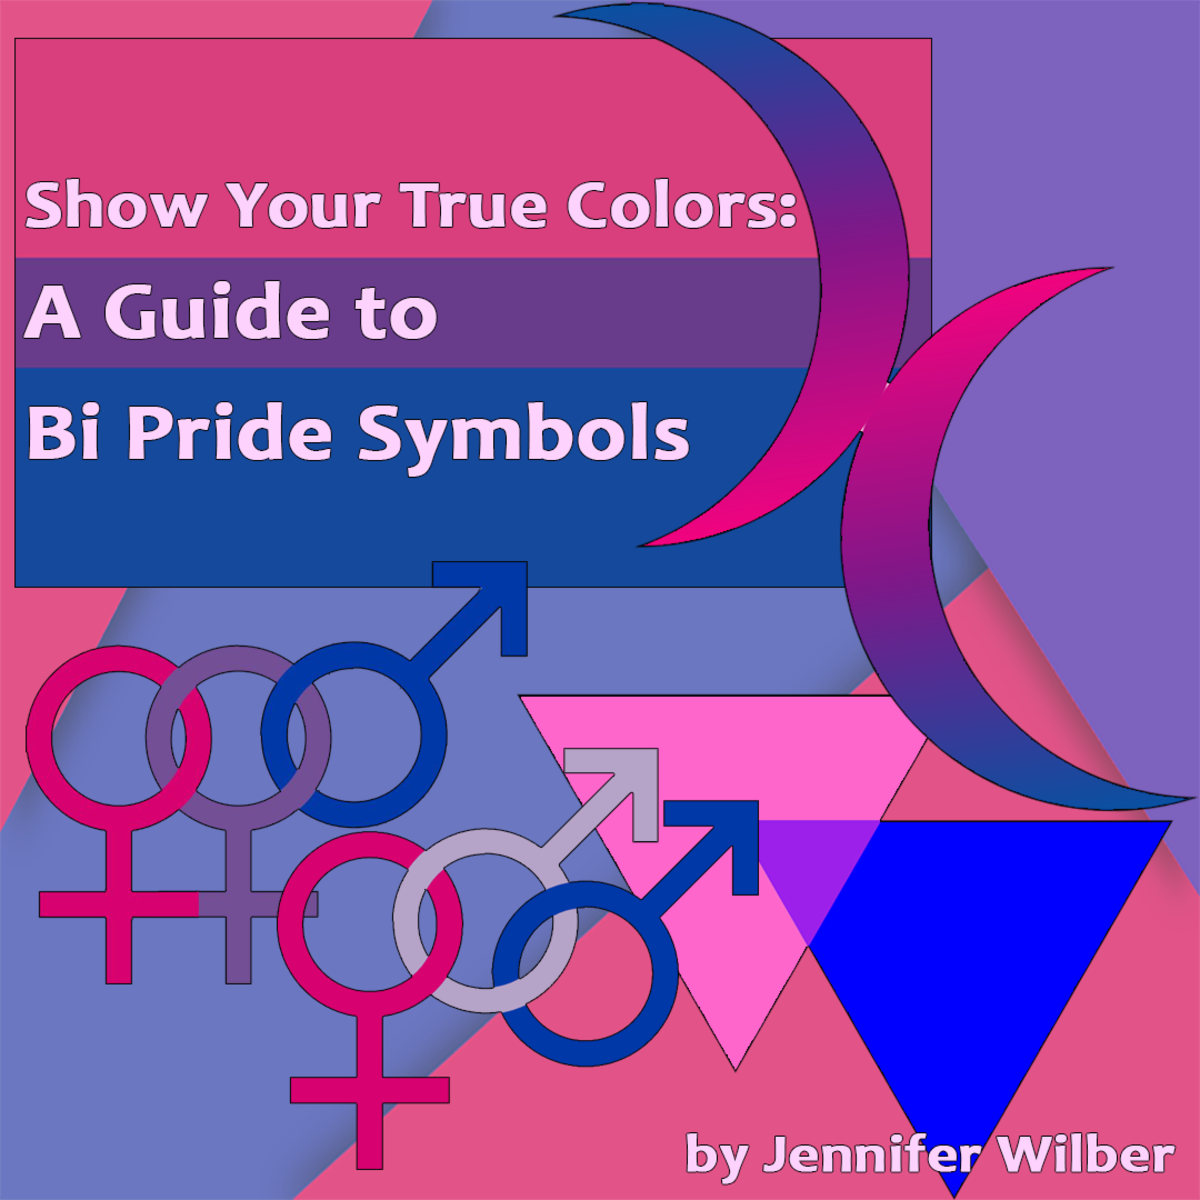 There are many different bi pride symbols that you may encounter at Pride celebrations.